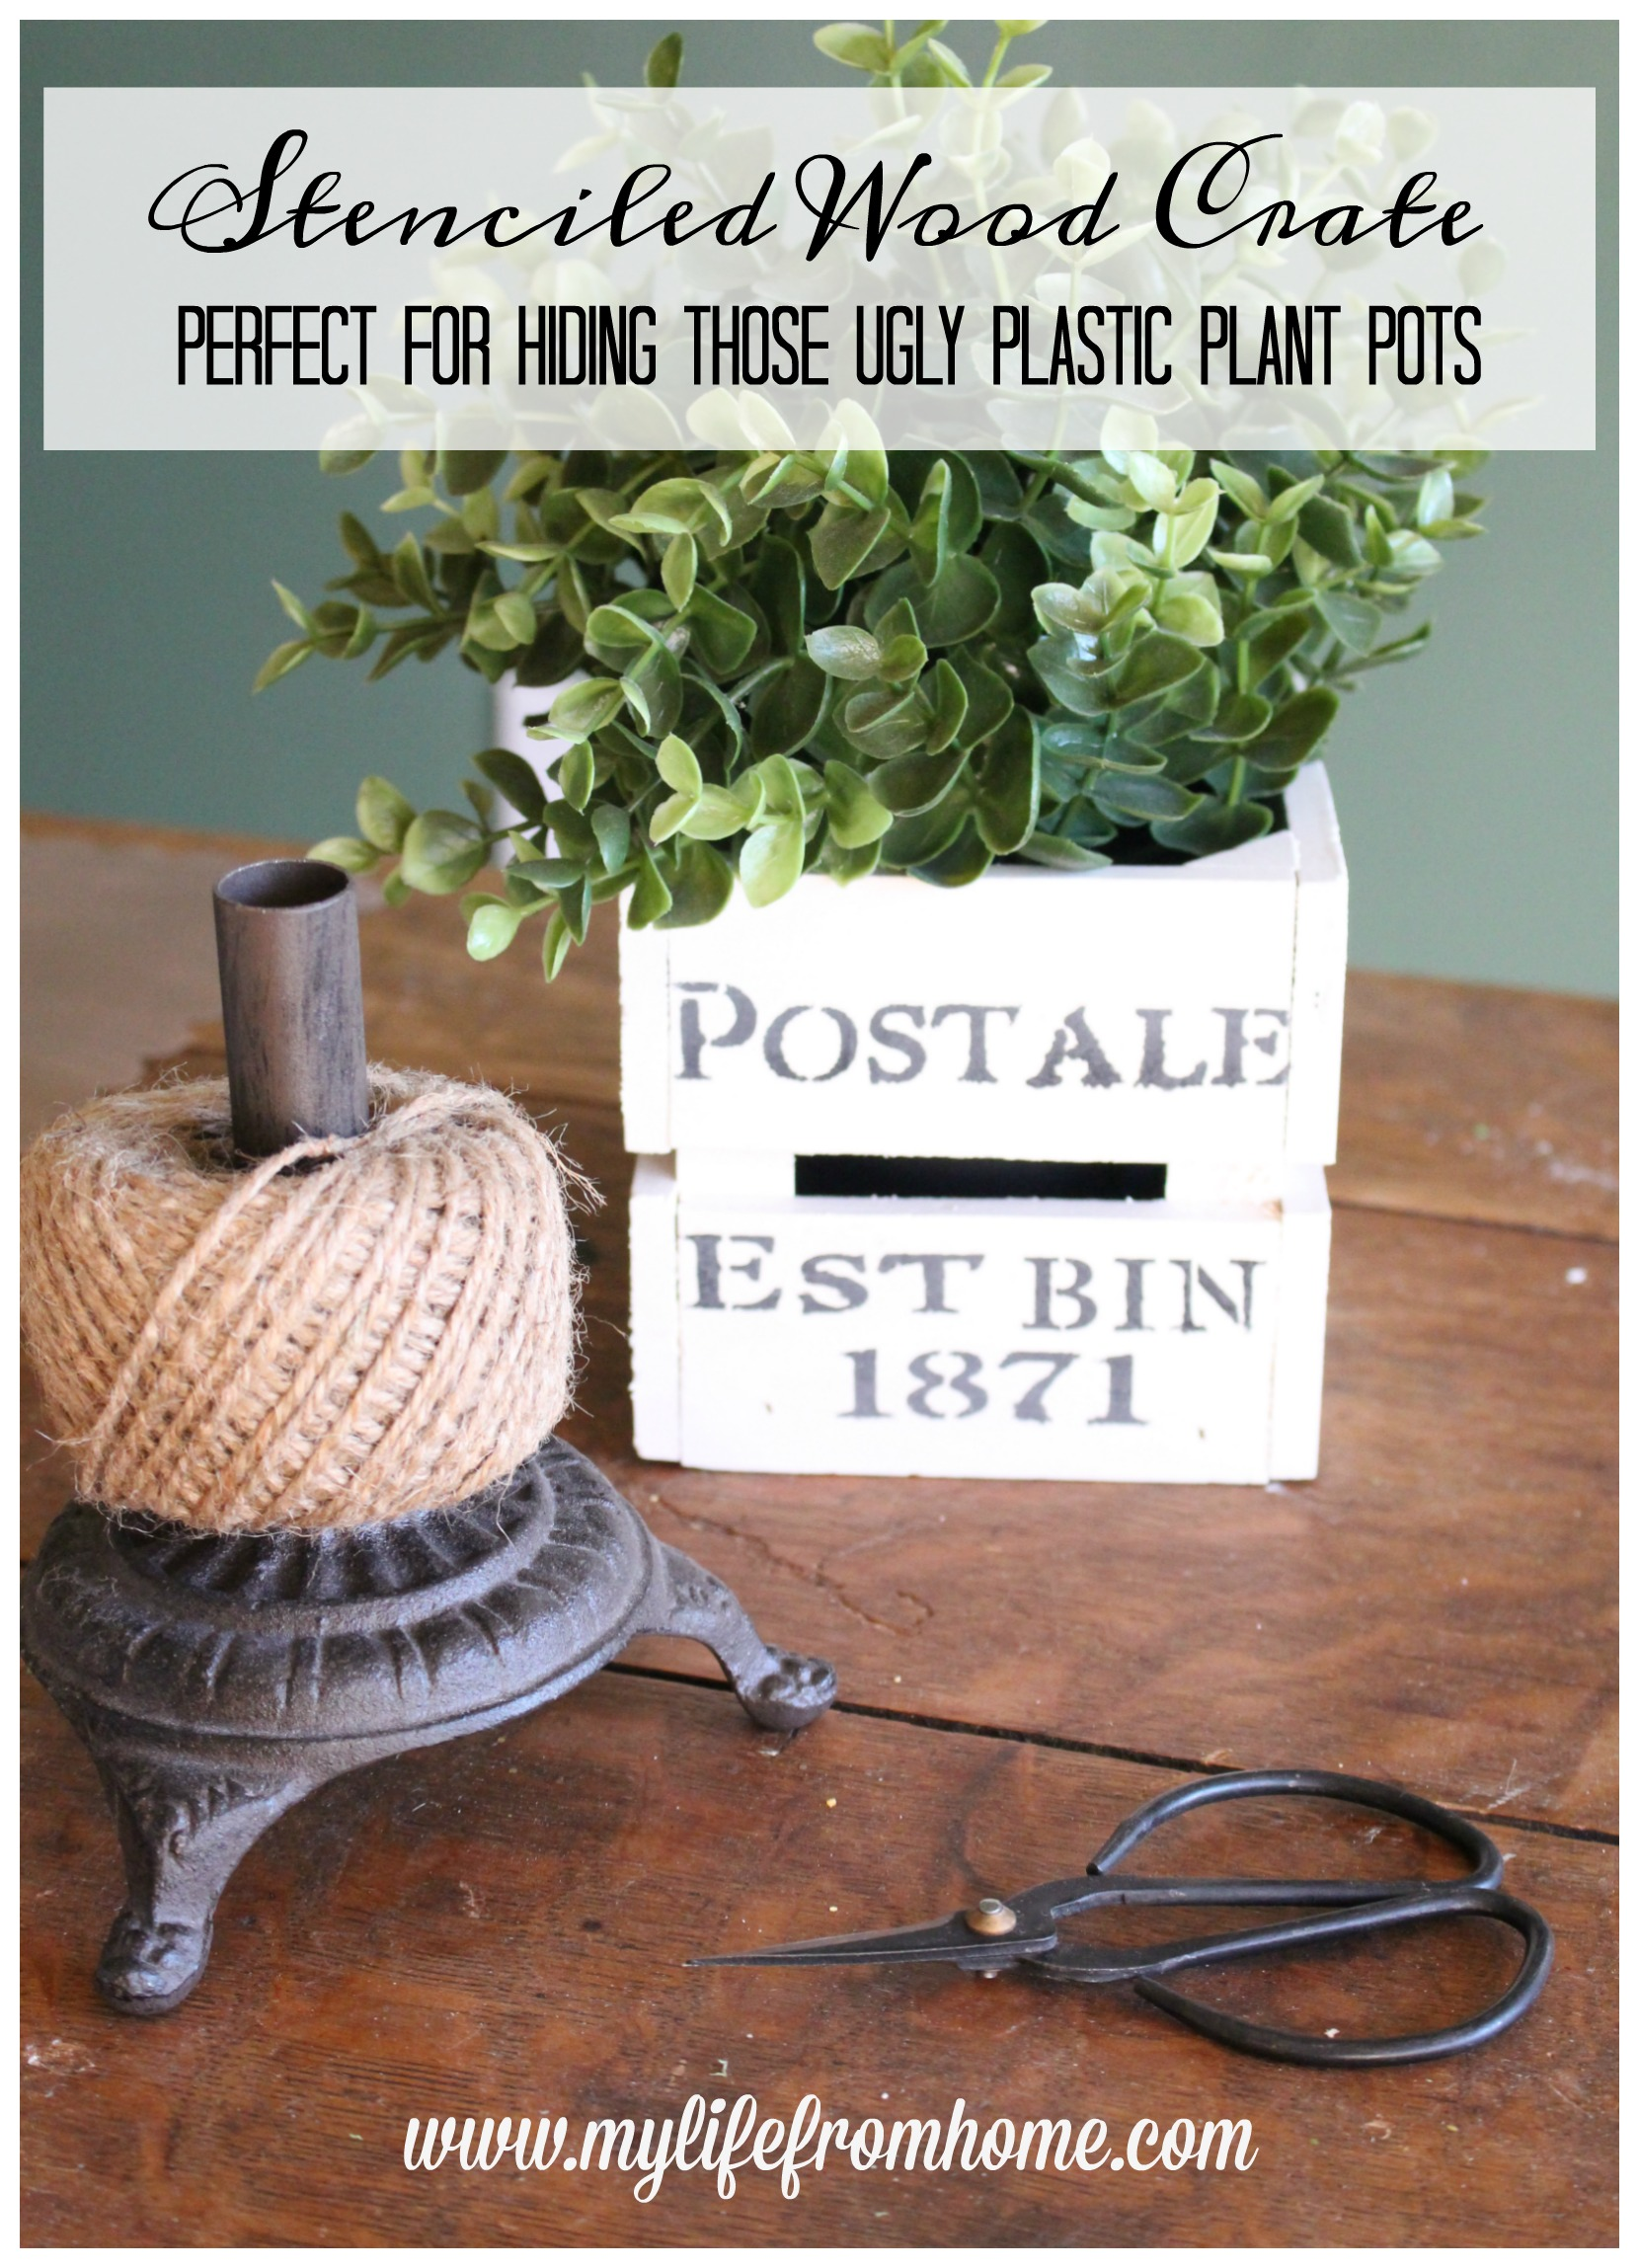 Stenciled Wood Crate- small crate- stencil on wood- vintage stencil- hiding ugly plastic plant pots- faux plant holder- plant pot